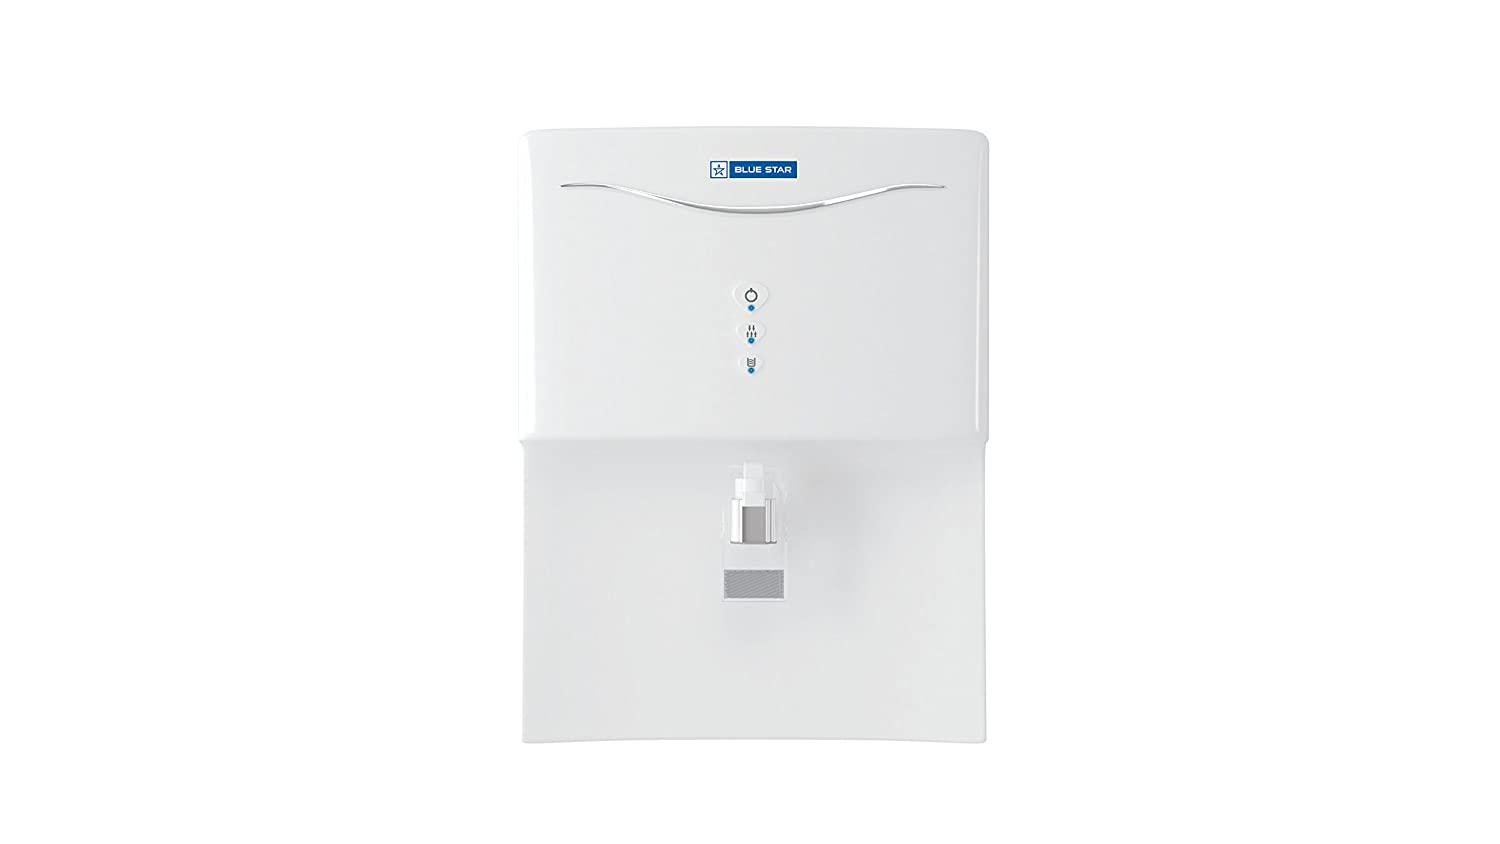 Blue Star Aristo RO+UF AR3WHAM01 7-Litre Water Purifier,White